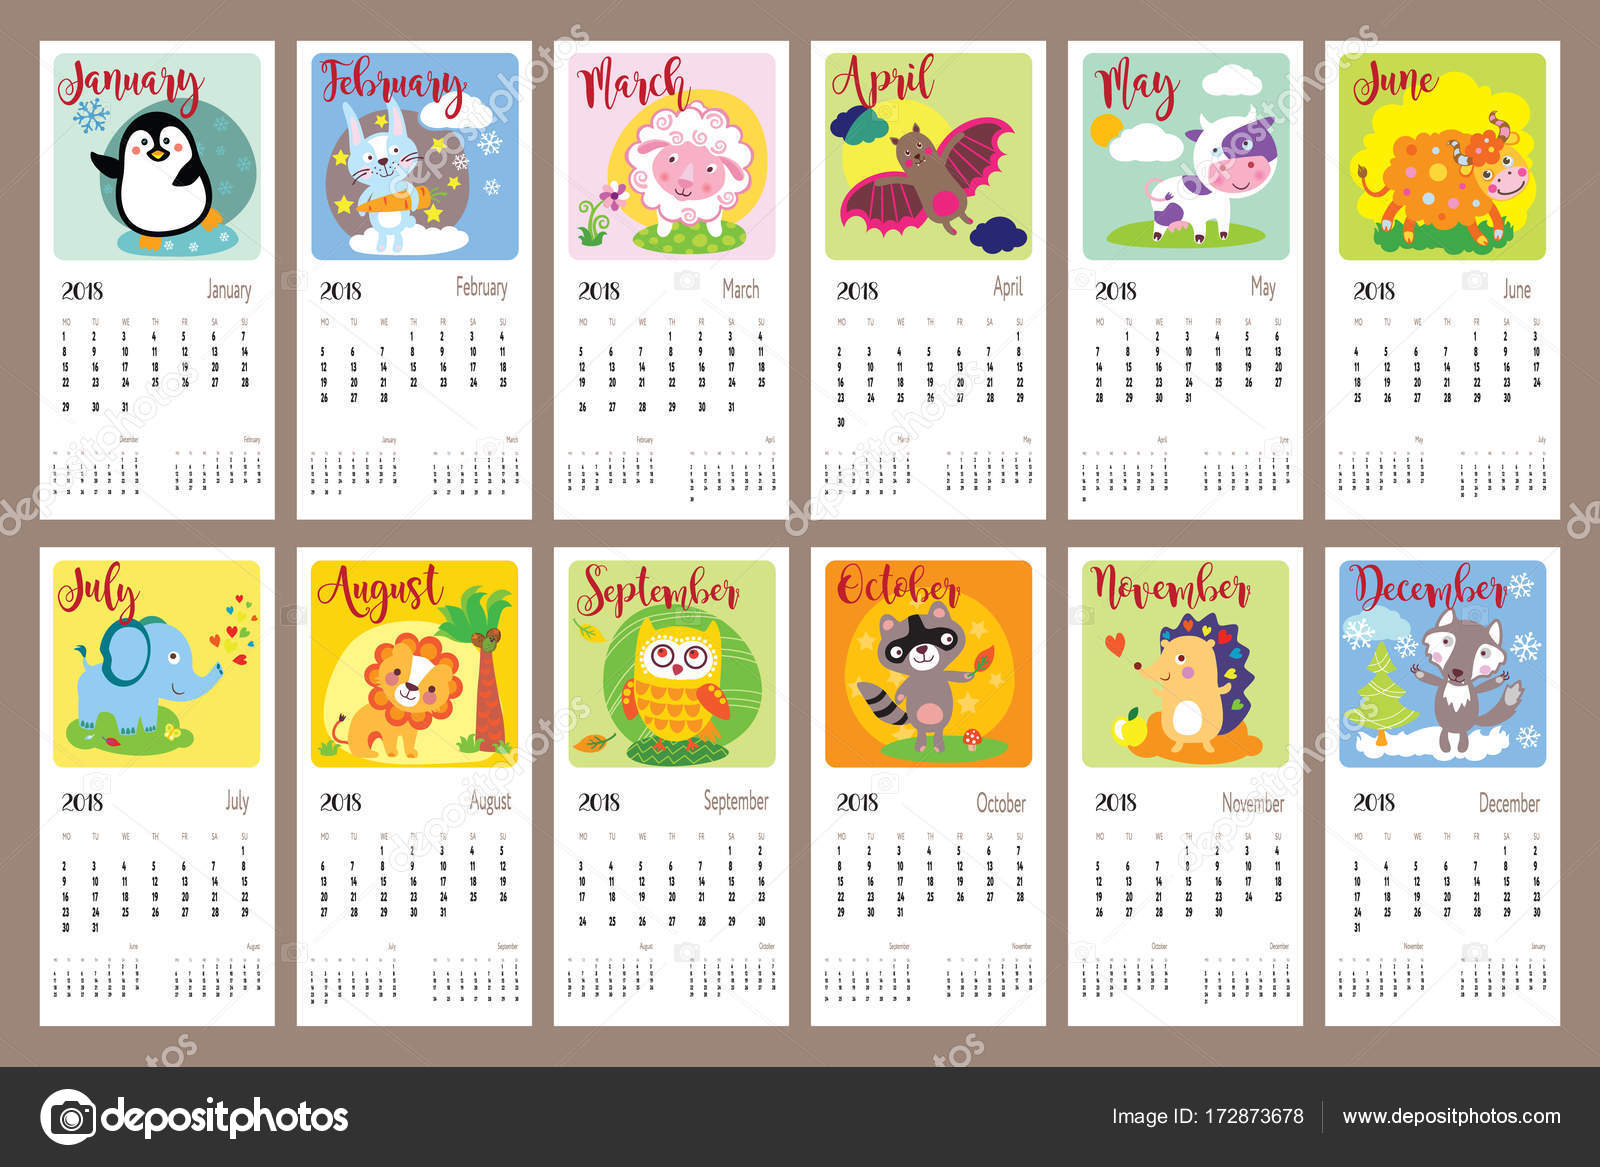 Calendrier Animaux.Calendrier Animaux Mignons Image Vectorielle Pushnoval